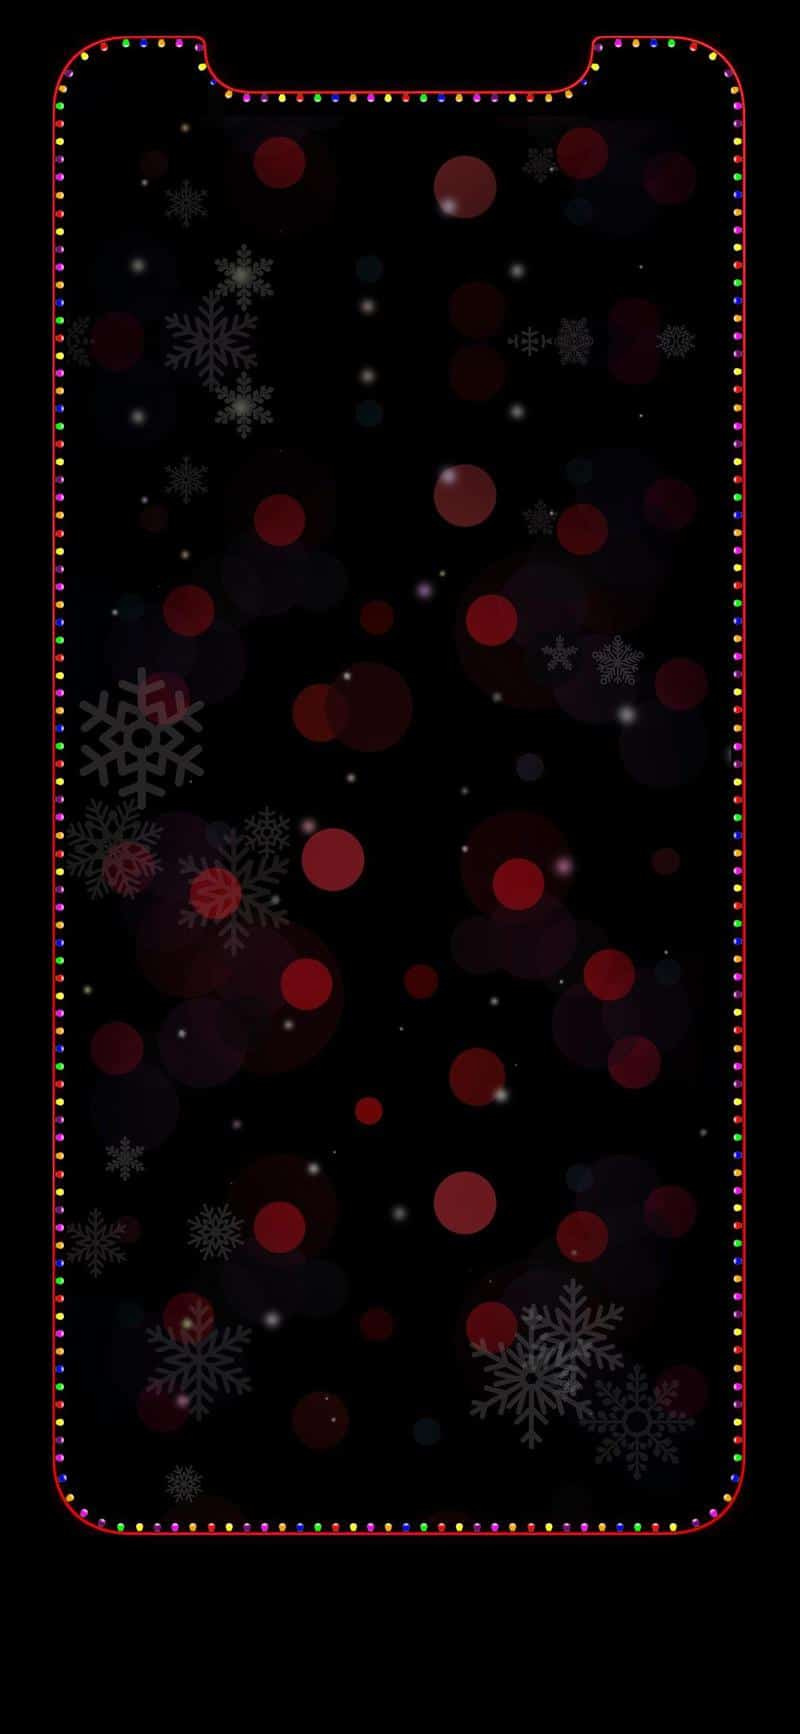 iphone x christmas wallpaper